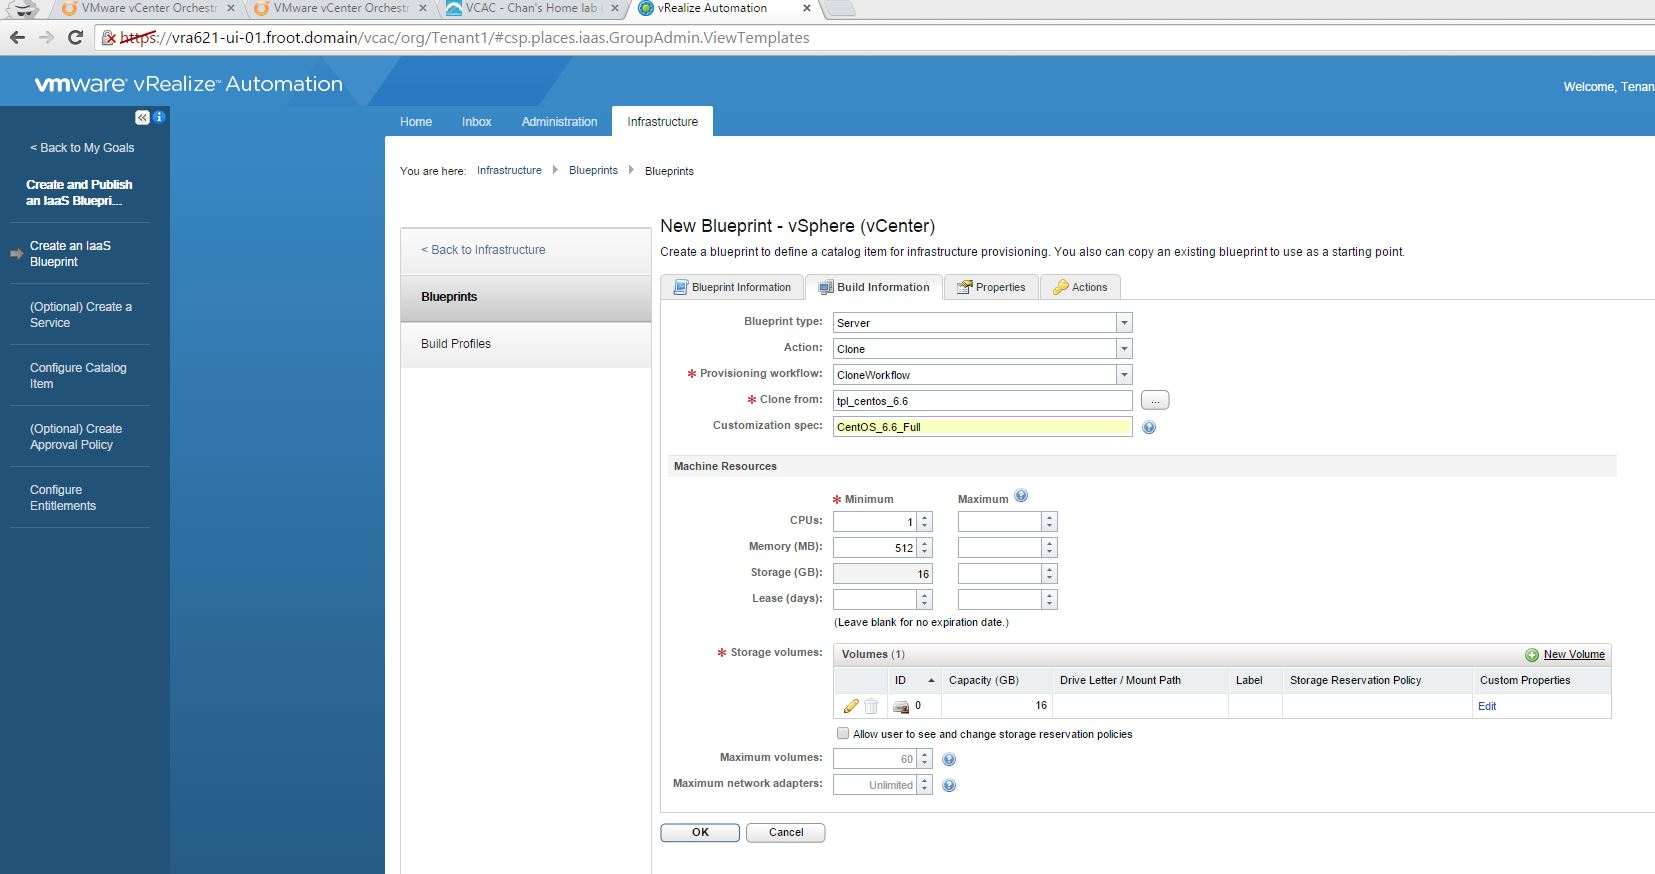 Vmware vrealize automation part 7 tenant administrator basic a full list of available all custom properties are available here and a list of specific custom properties applicable for a cloning blueprint malvernweather